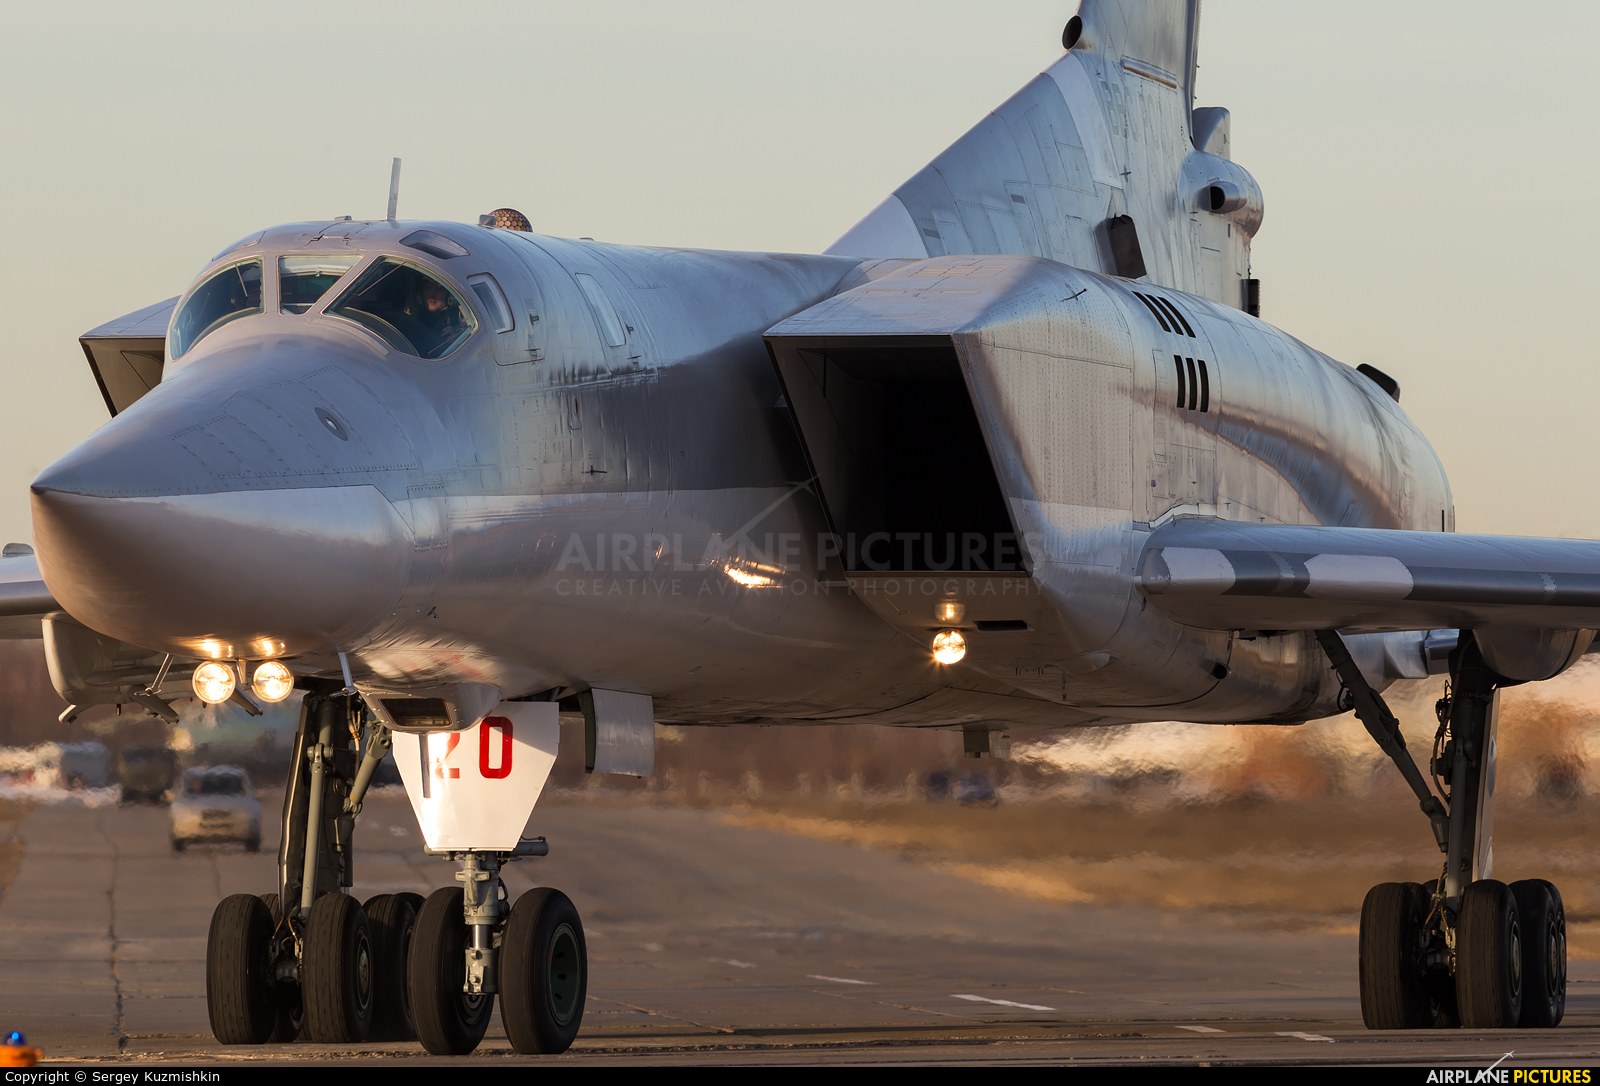 Russia - Air Force RF-94233 aircraft at Undisclosed Location